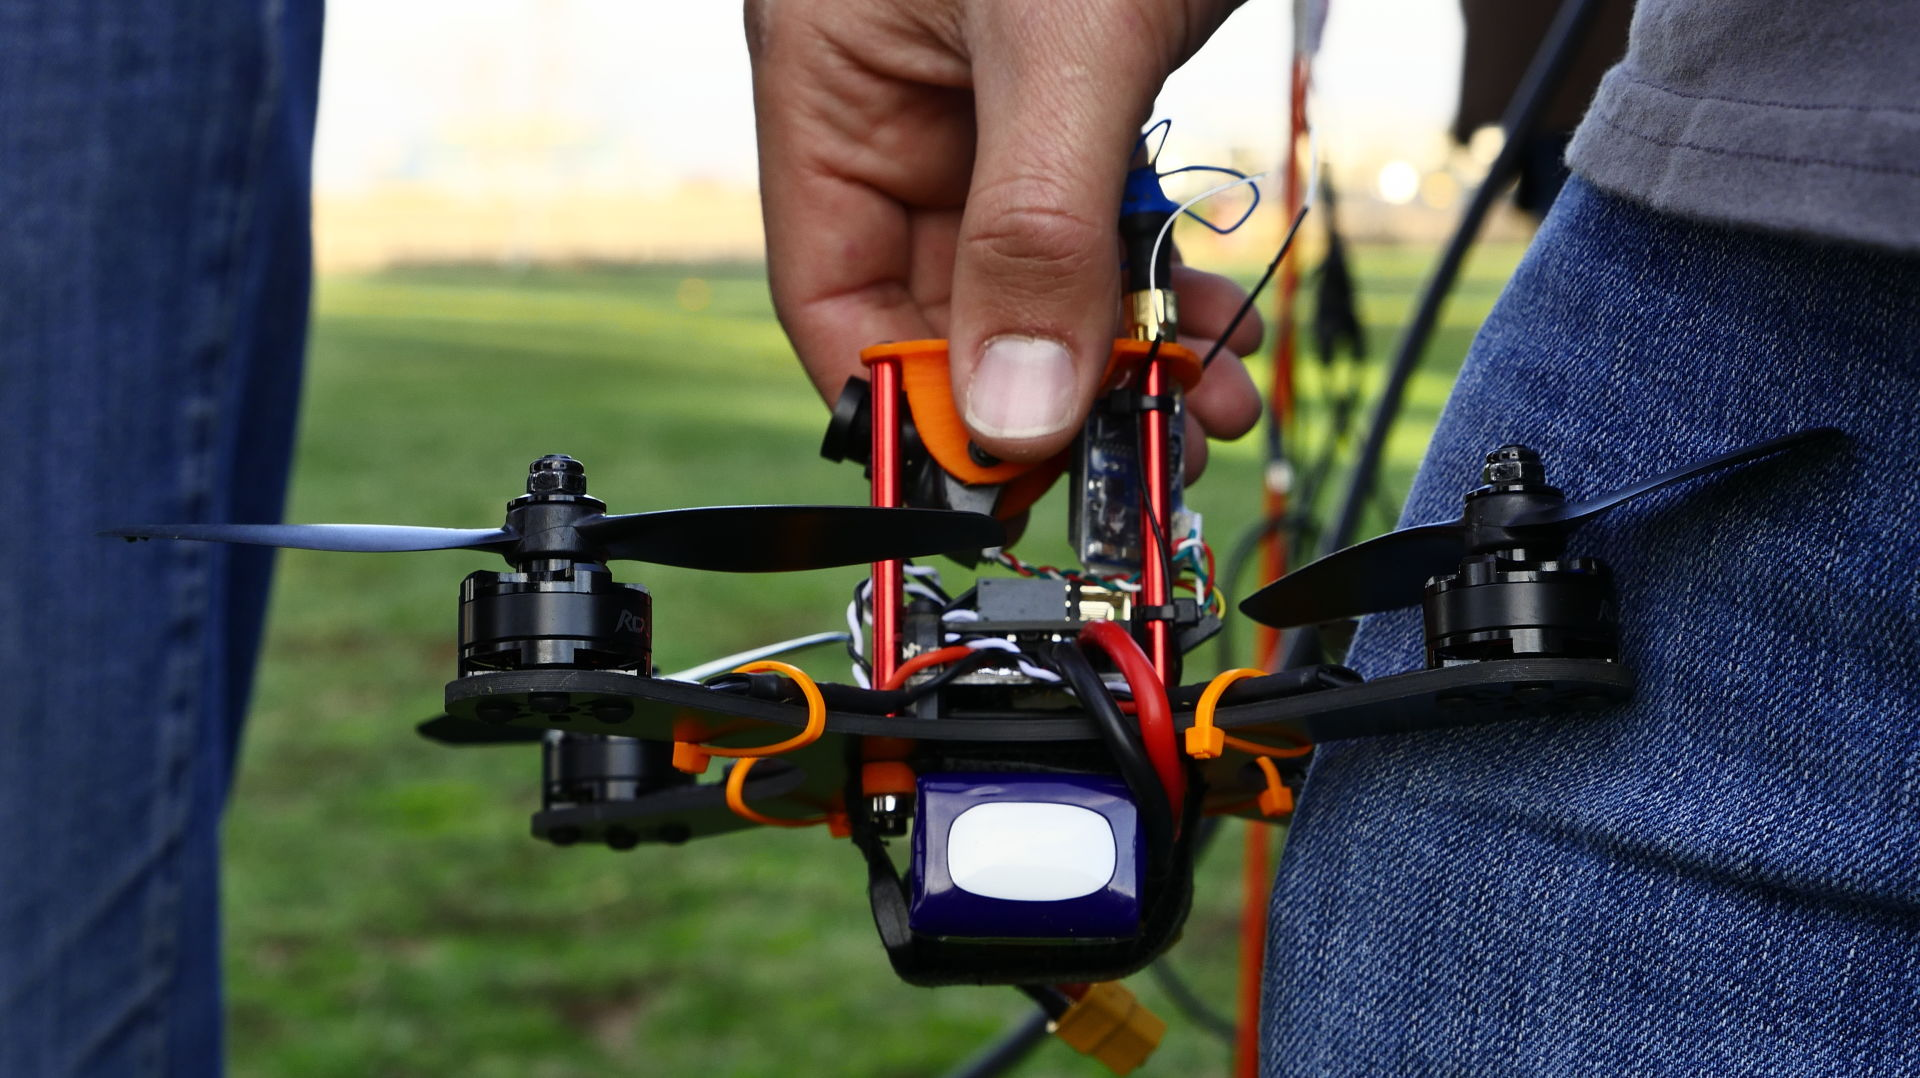 Used Drones For Sale >> Racing Drones Built for Speed, Not Selfies, Take Off With ...